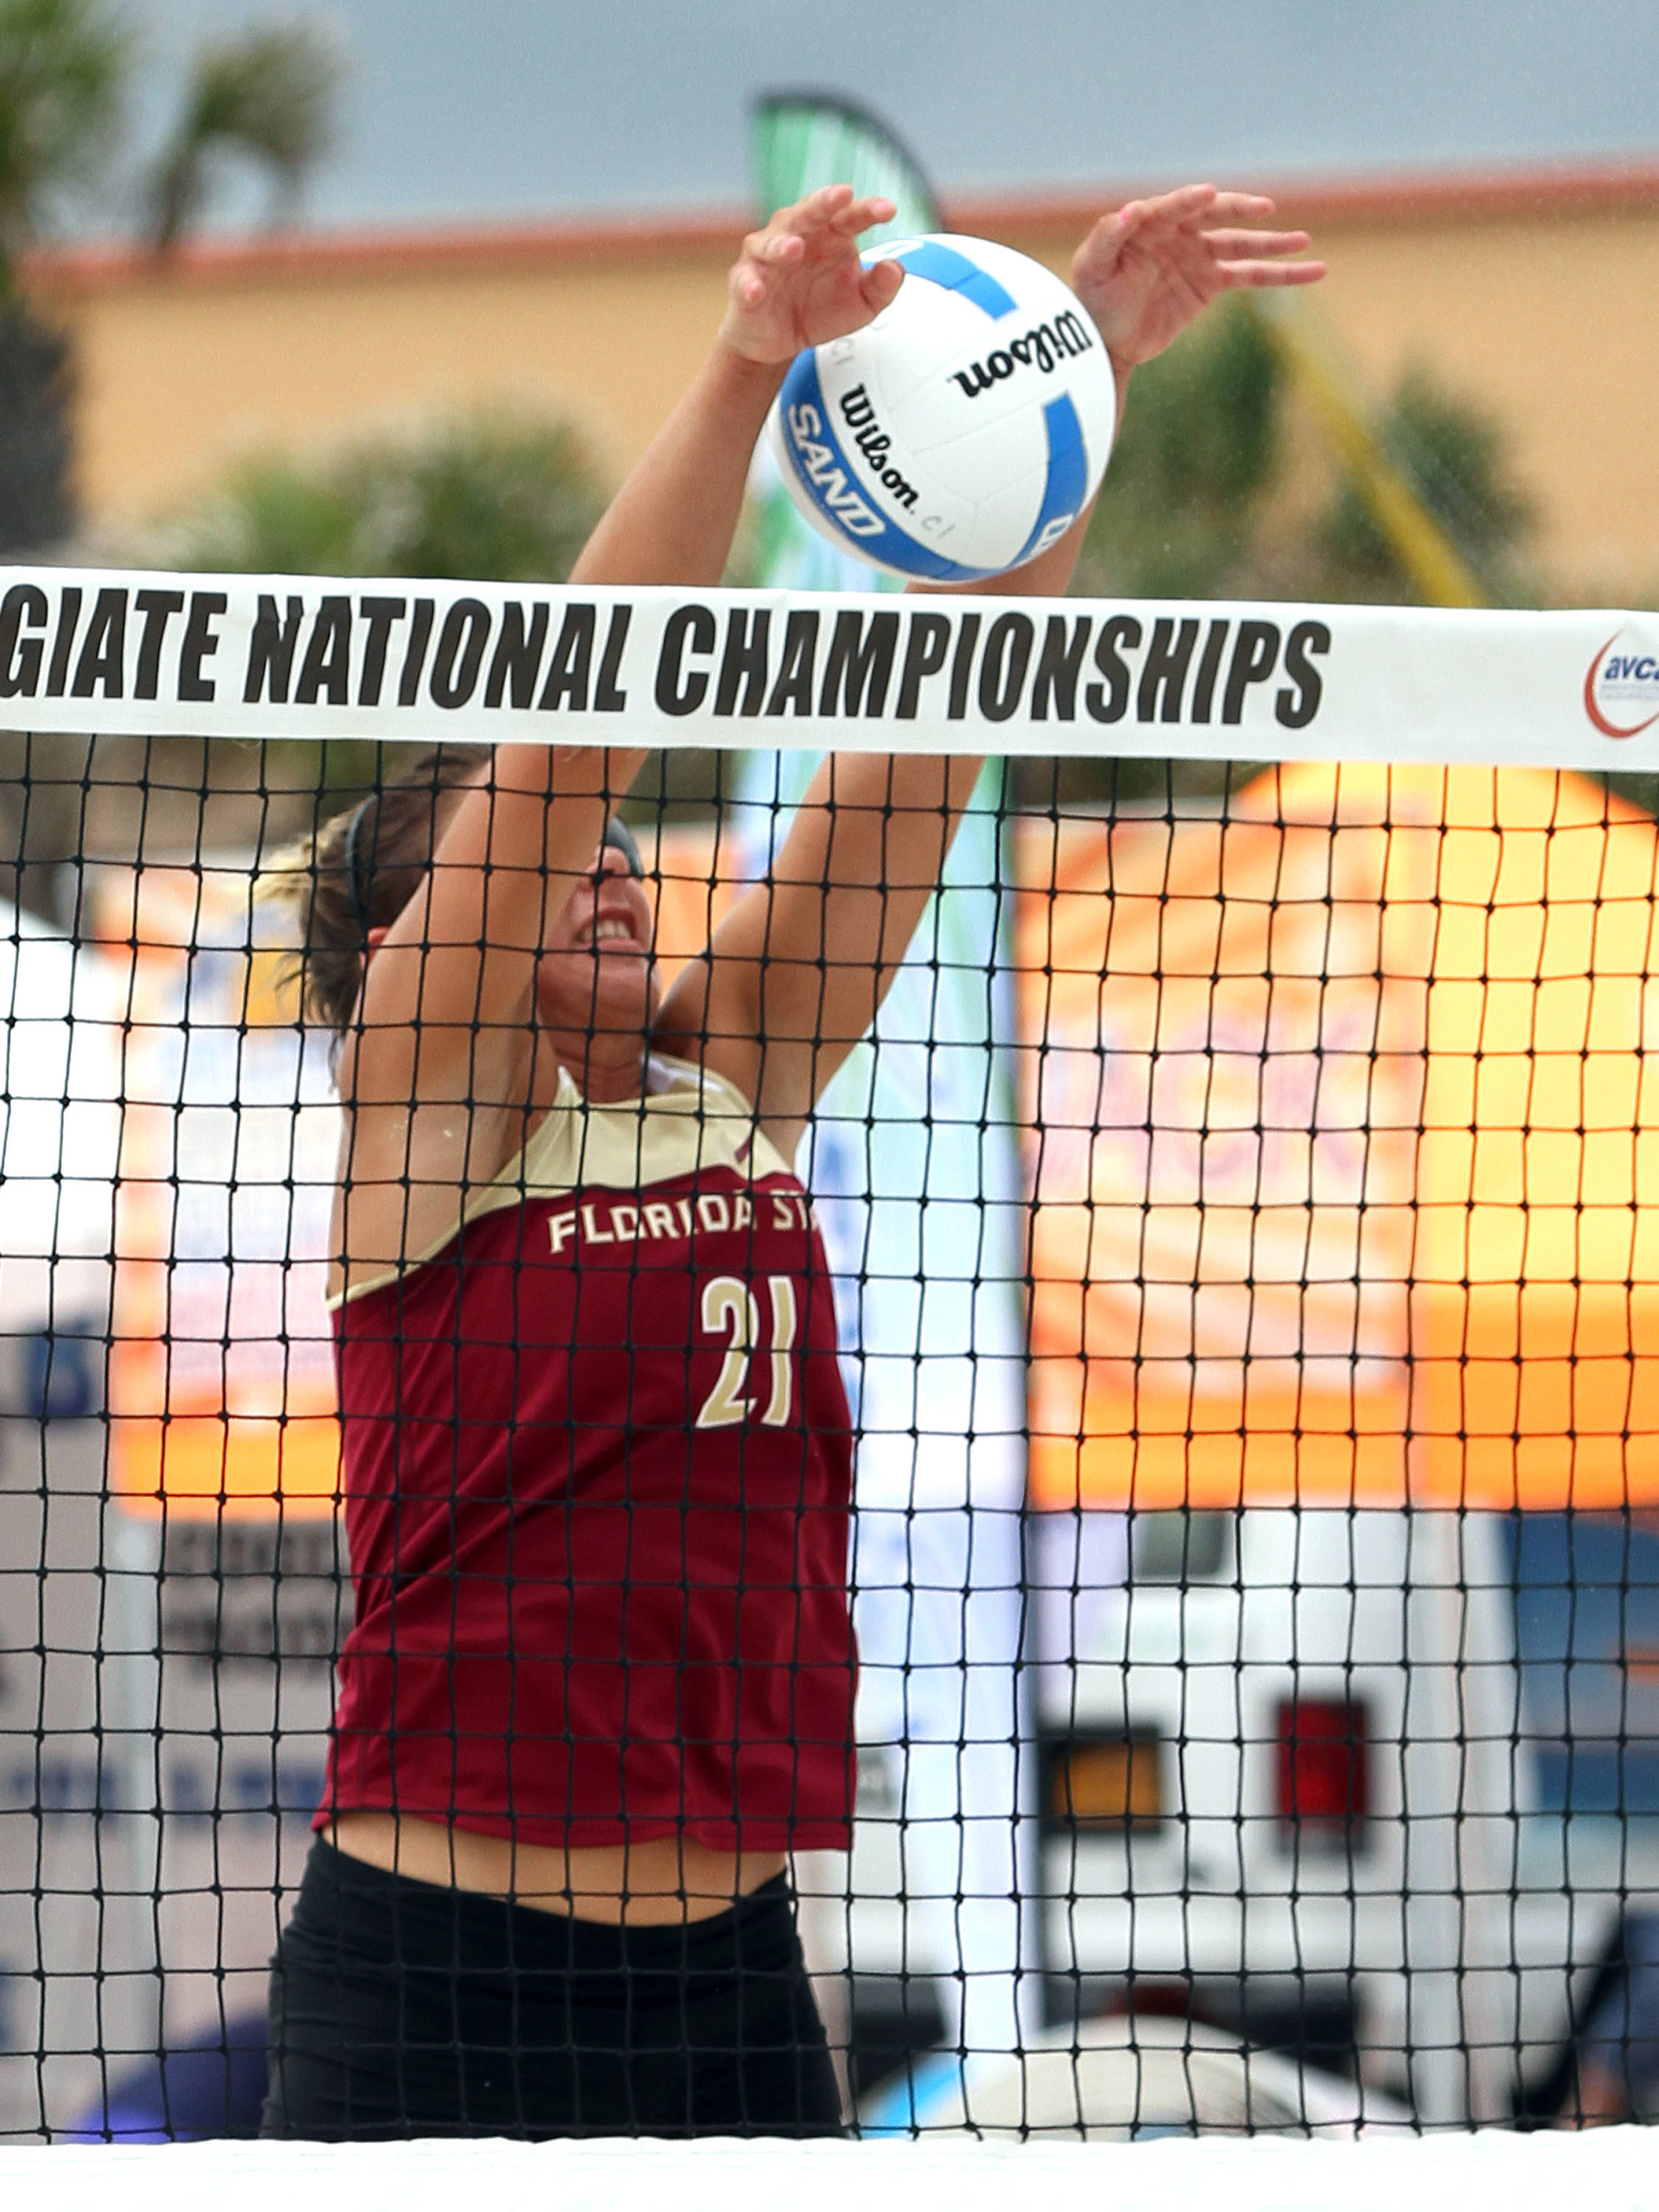 Jace Pardon (21), AVCA Collegiate Sand Volleyball National Championships,  Gulf Shores, Alabama,05/03/13 . (Photo by Steve Musco)